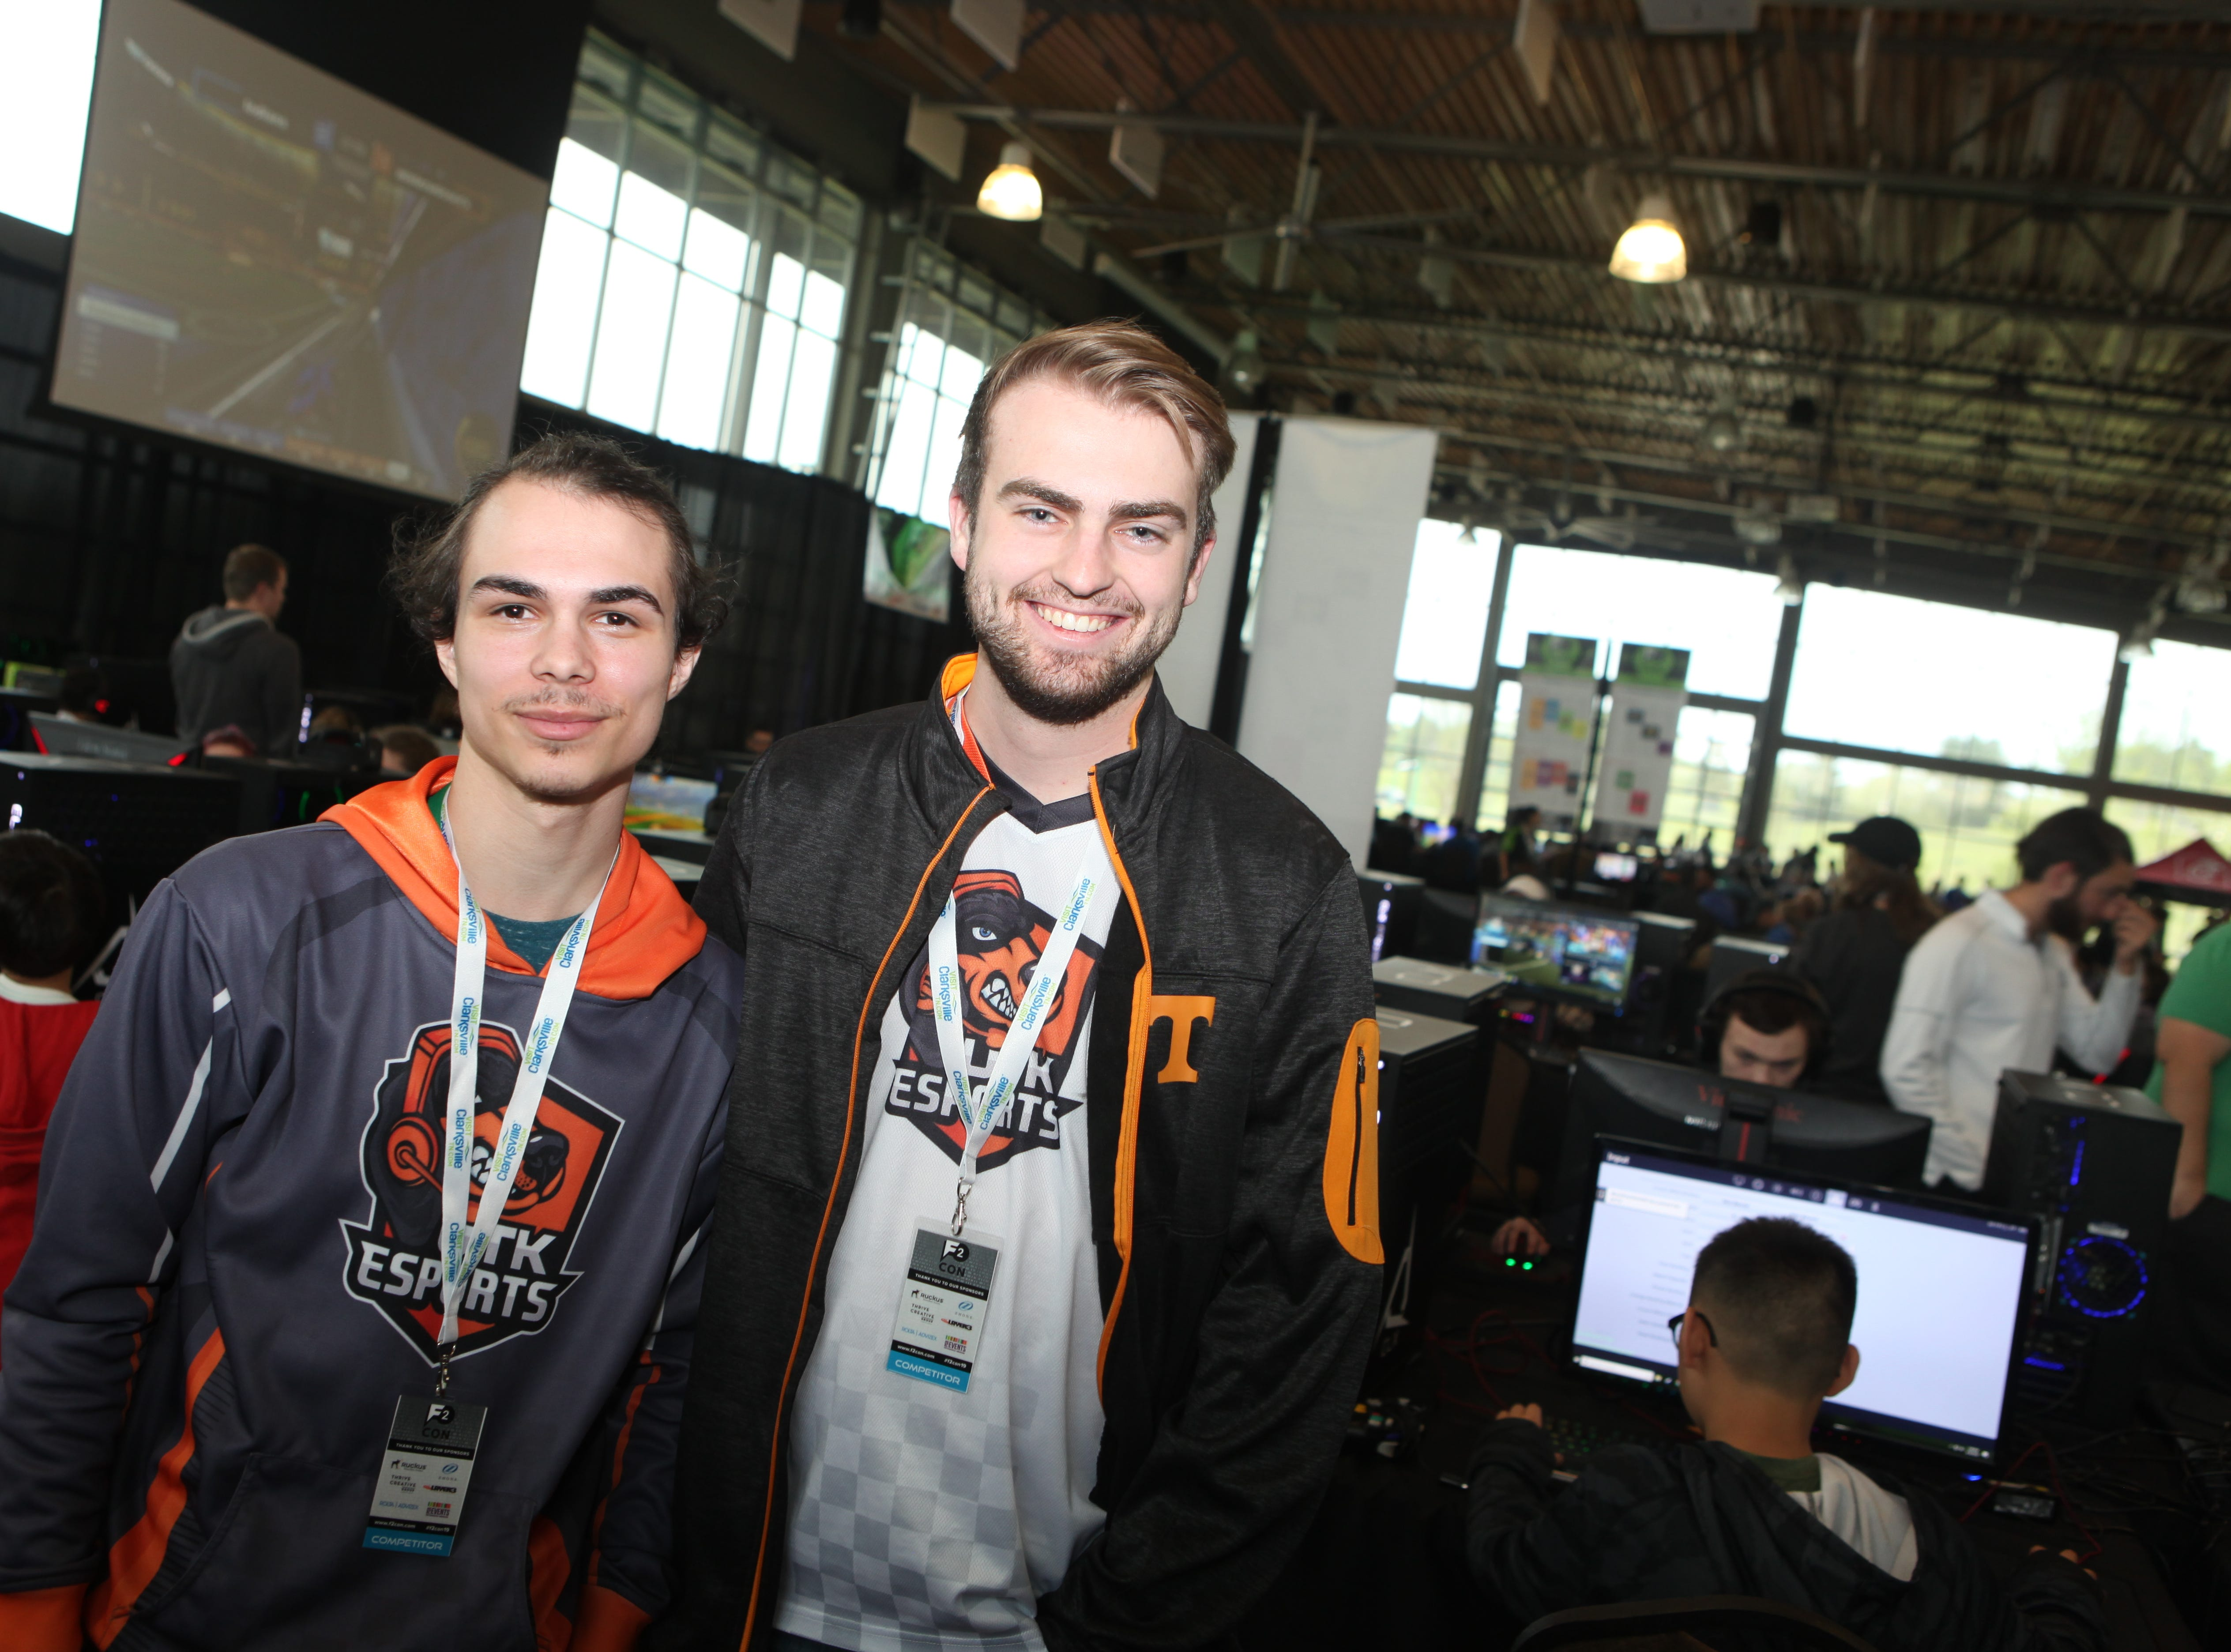 Pub G Tournament Champion Aaron Stone and Michael Slandzicki representing UT Knoxville's E Sports Team at the second annual F2 Con Gaming Tournament on Saturday, April 20, 2019.